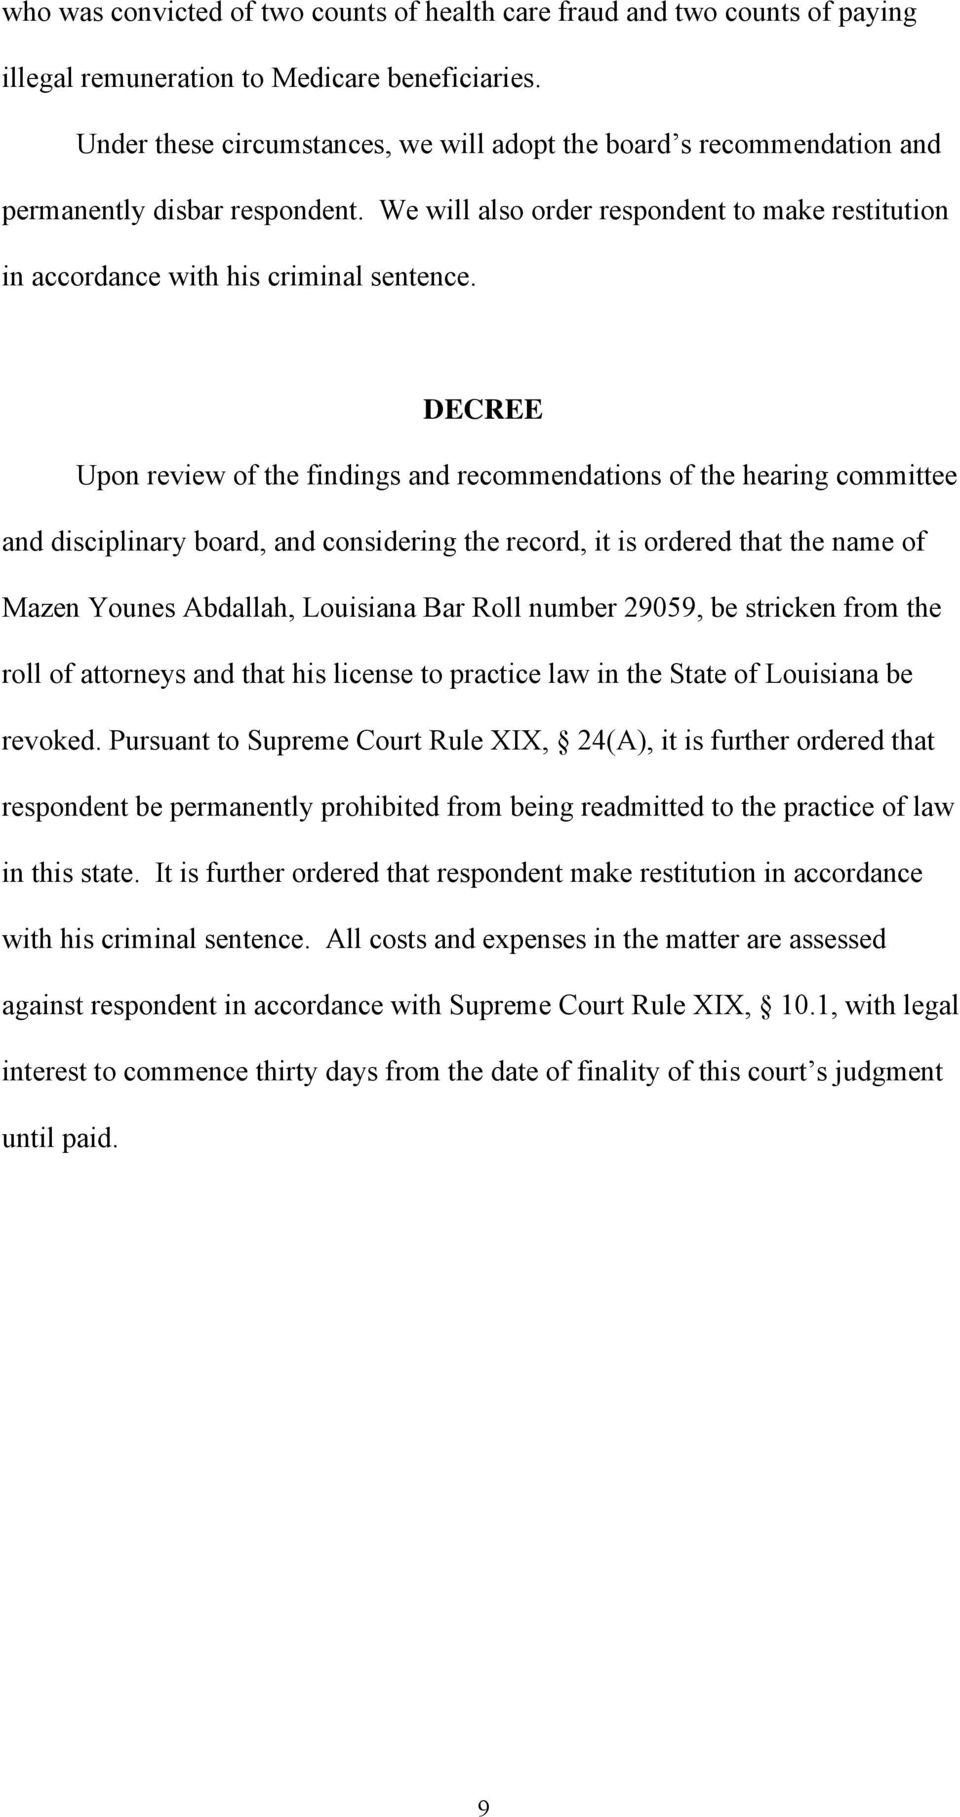 DECREE Upon review of the findings and recommendations of the hearing committee and disciplinary board, and considering the record, it is ordered that the name of Mazen Younes Abdallah, Louisiana Bar